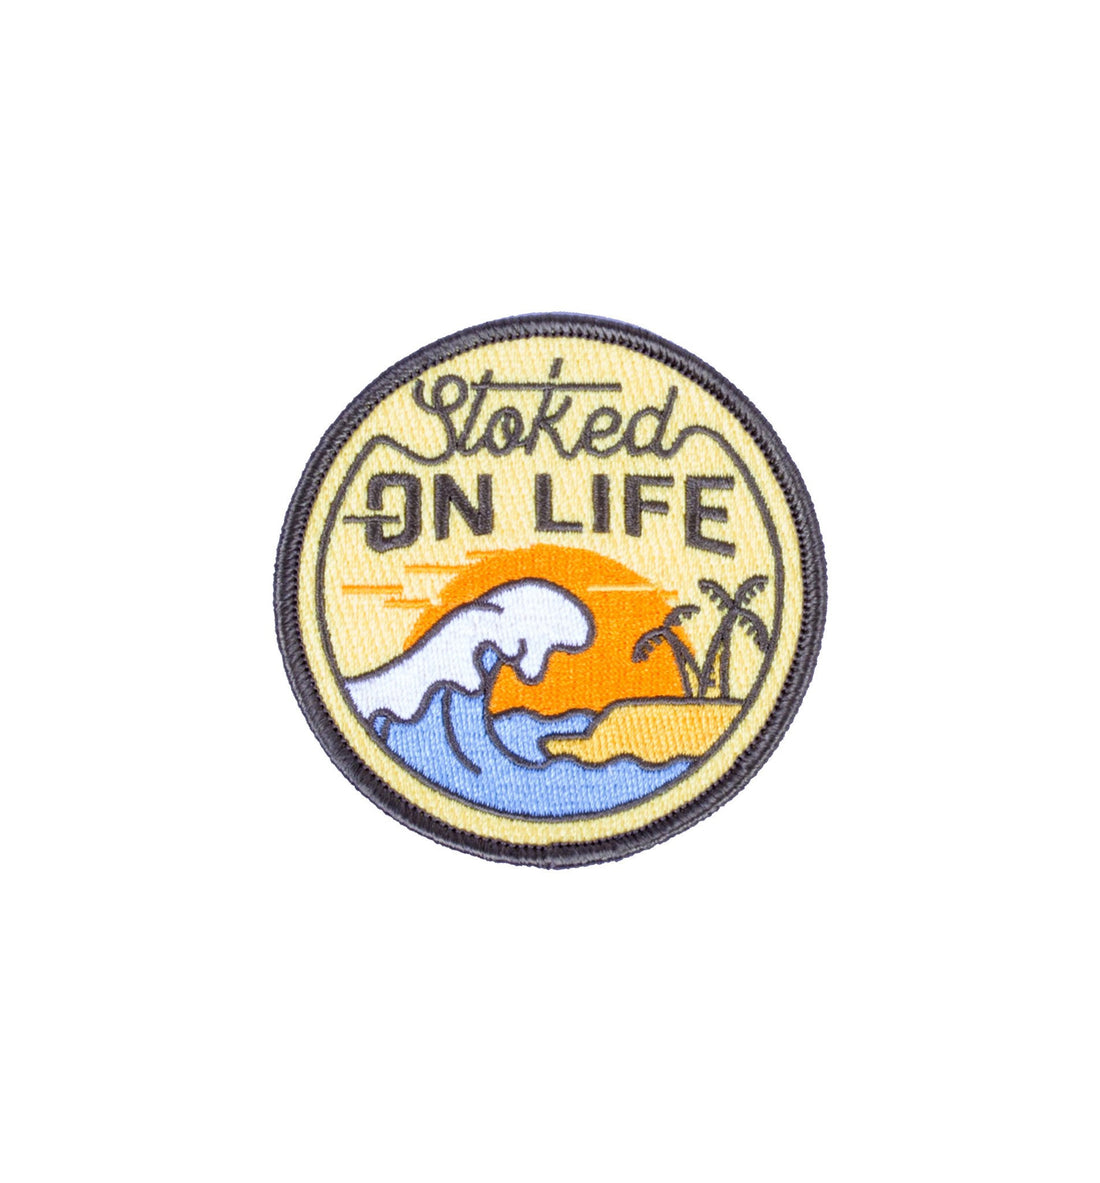 Asilda - Stoked On Life Patch - Accessories: Patches - Iron and Resin